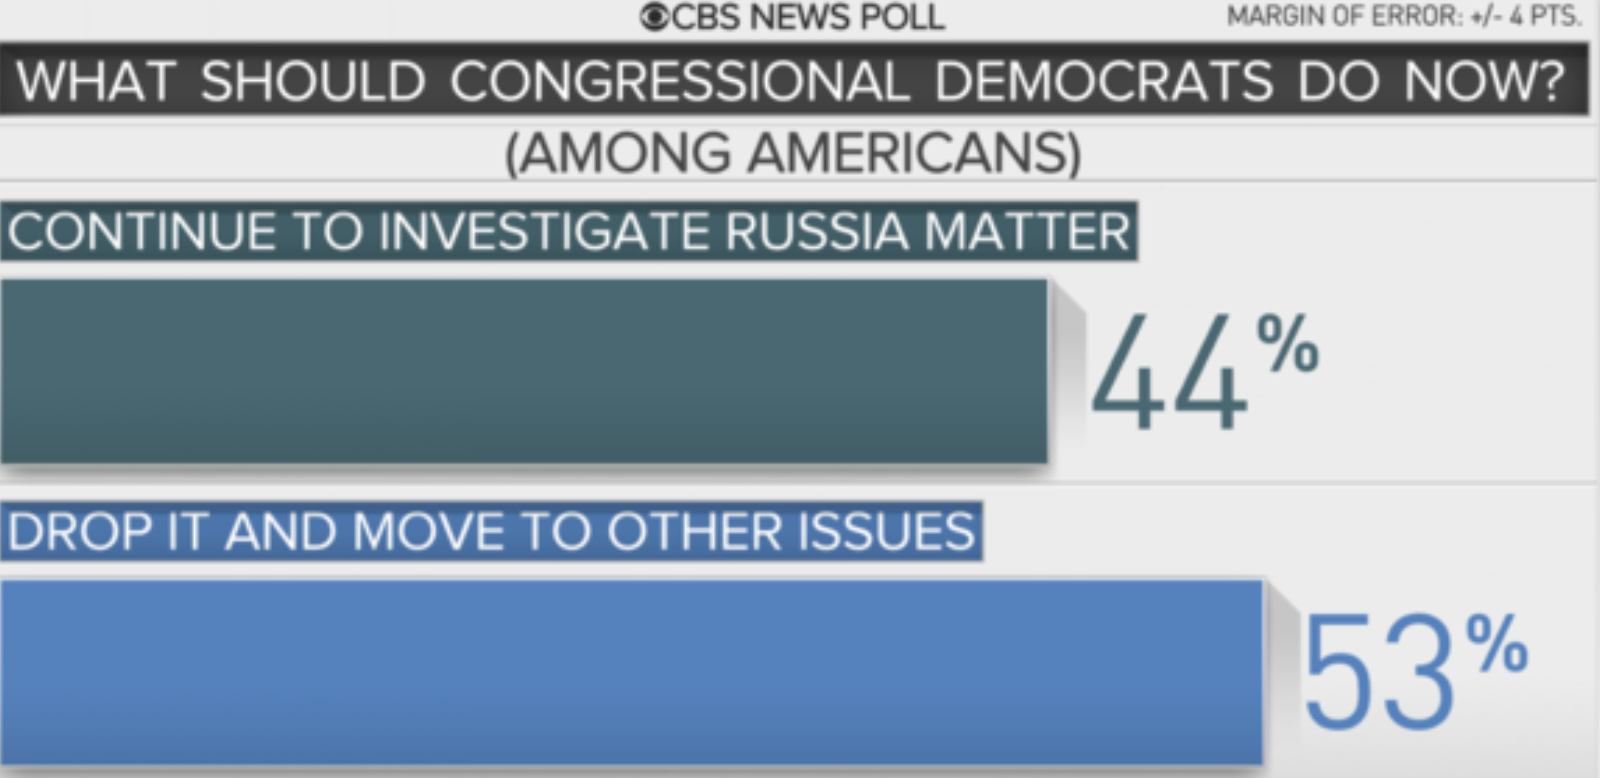 Poll: 53% of Americans want Congress to move on from Russia matter